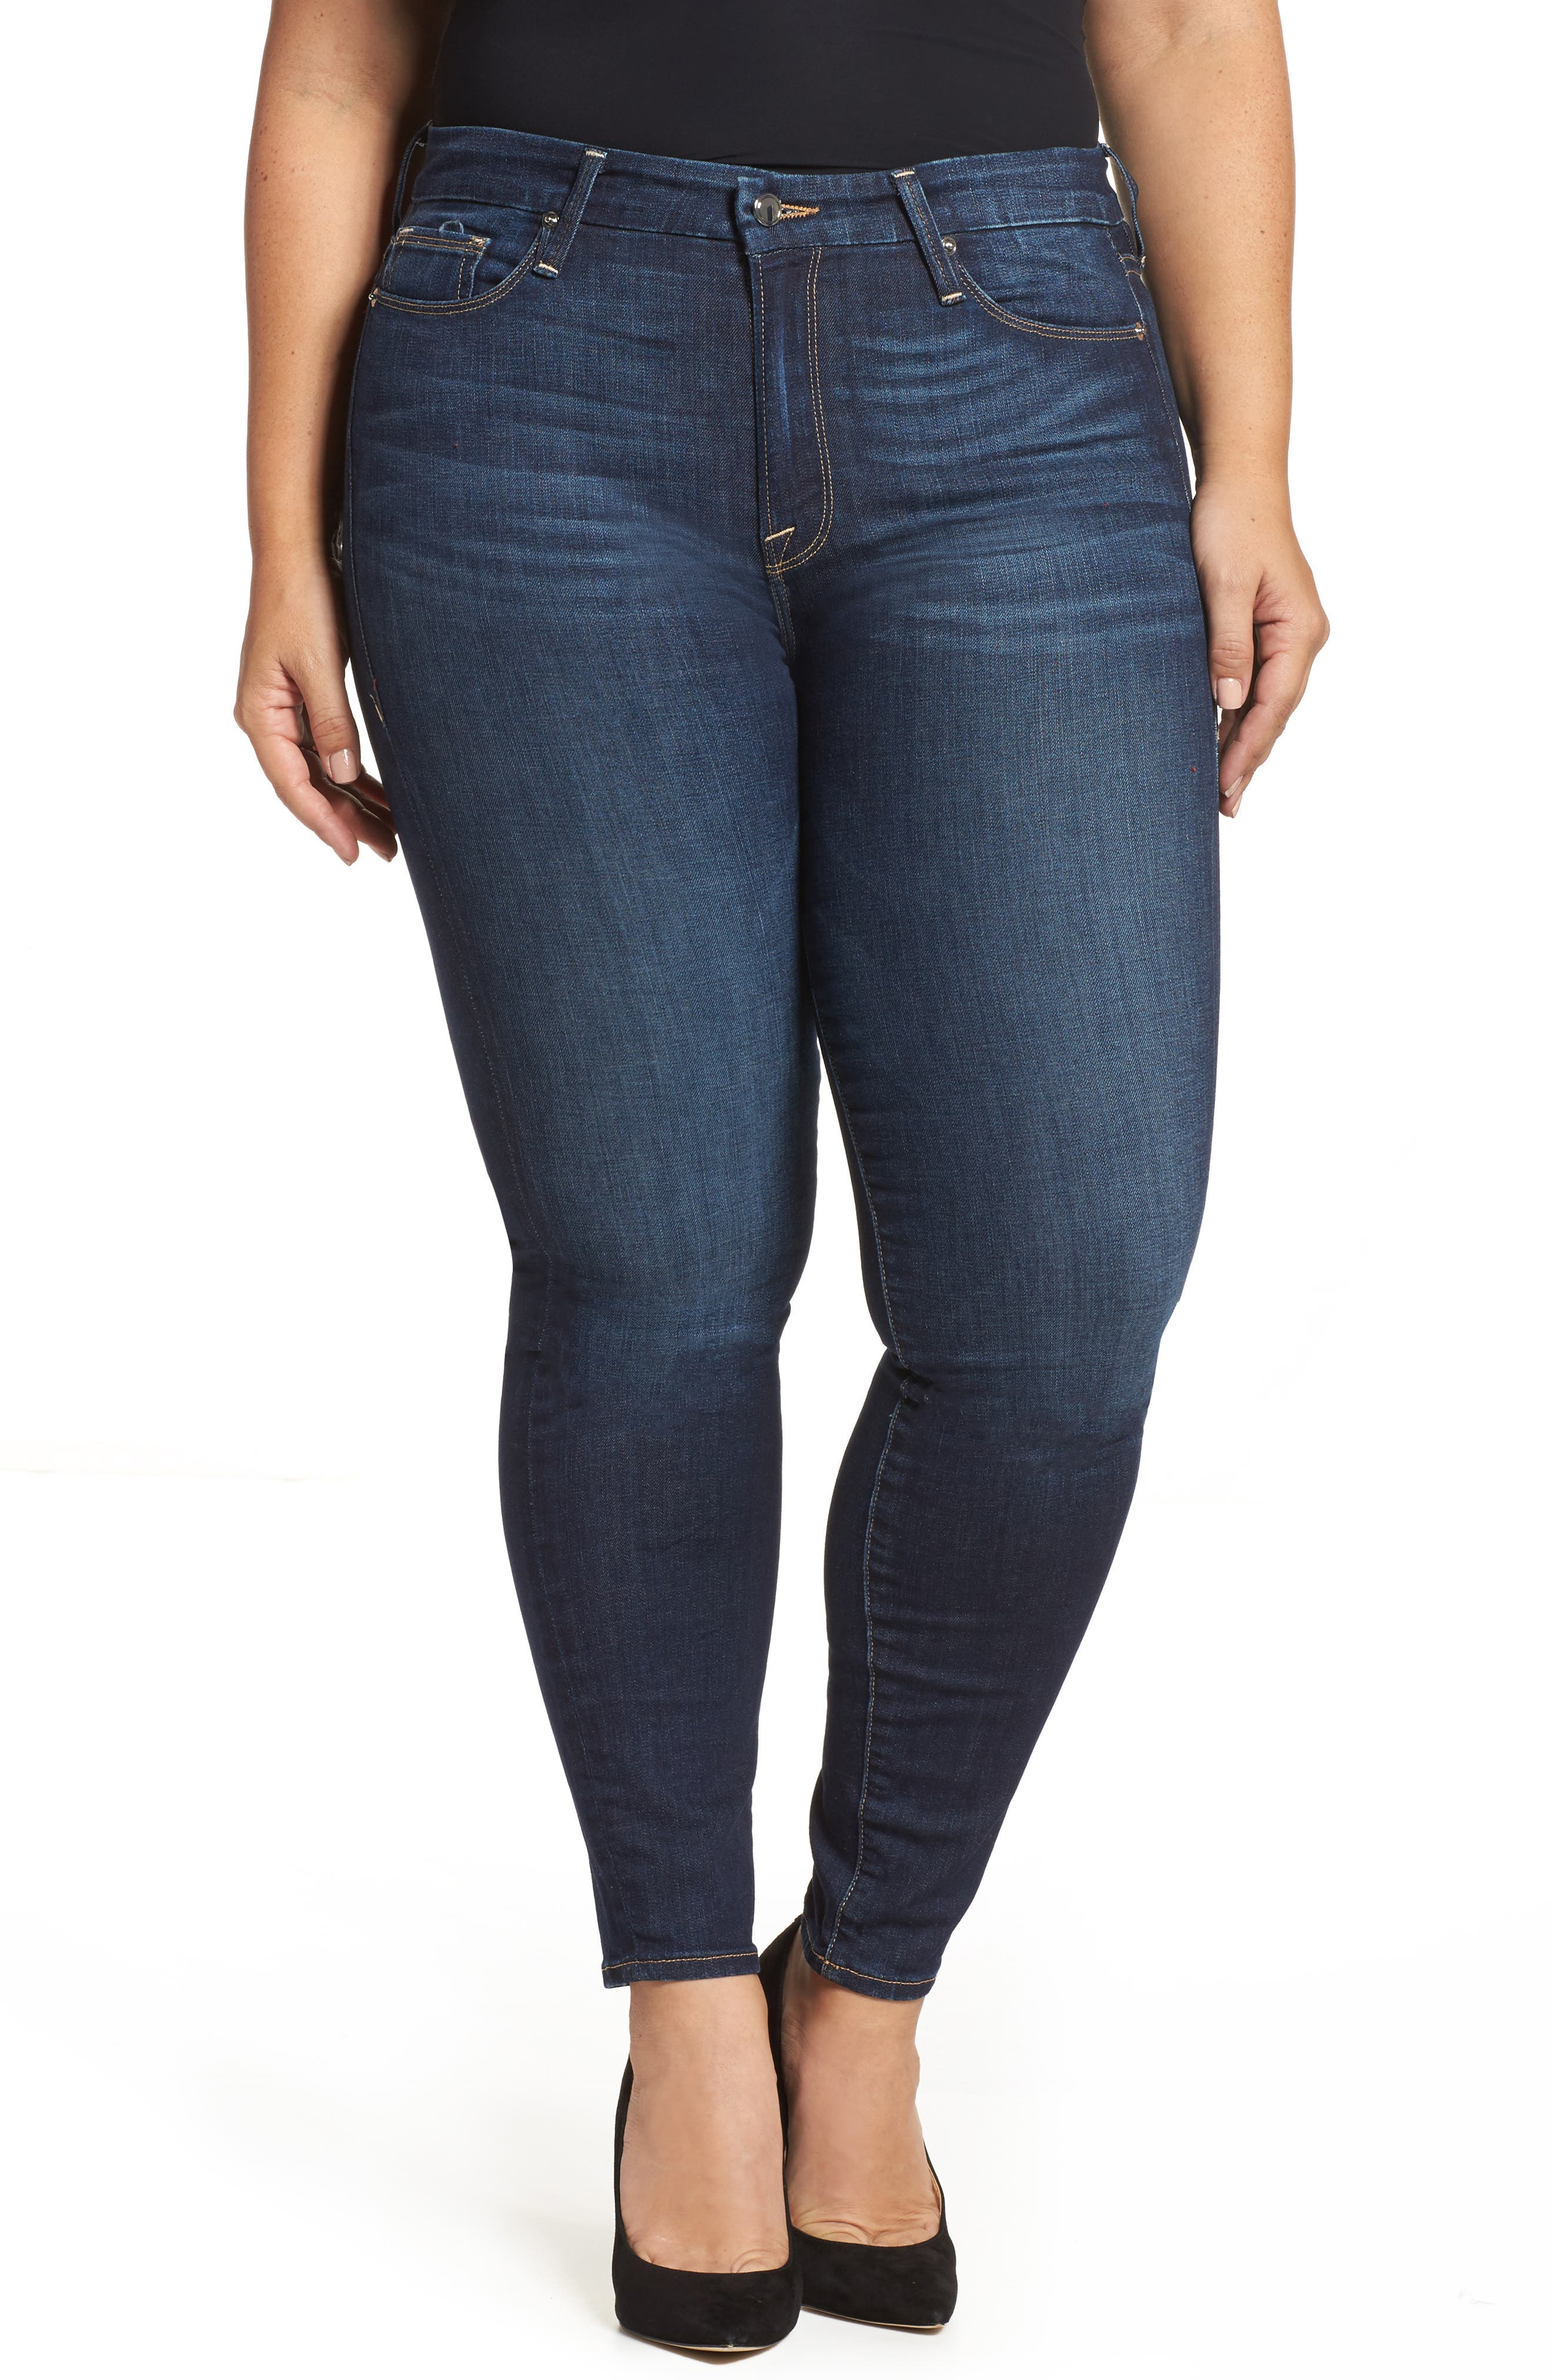 Main Image - Good American Good Legs High Waist Skinny Jeans (Blue 091) (Regular & Plus Size)